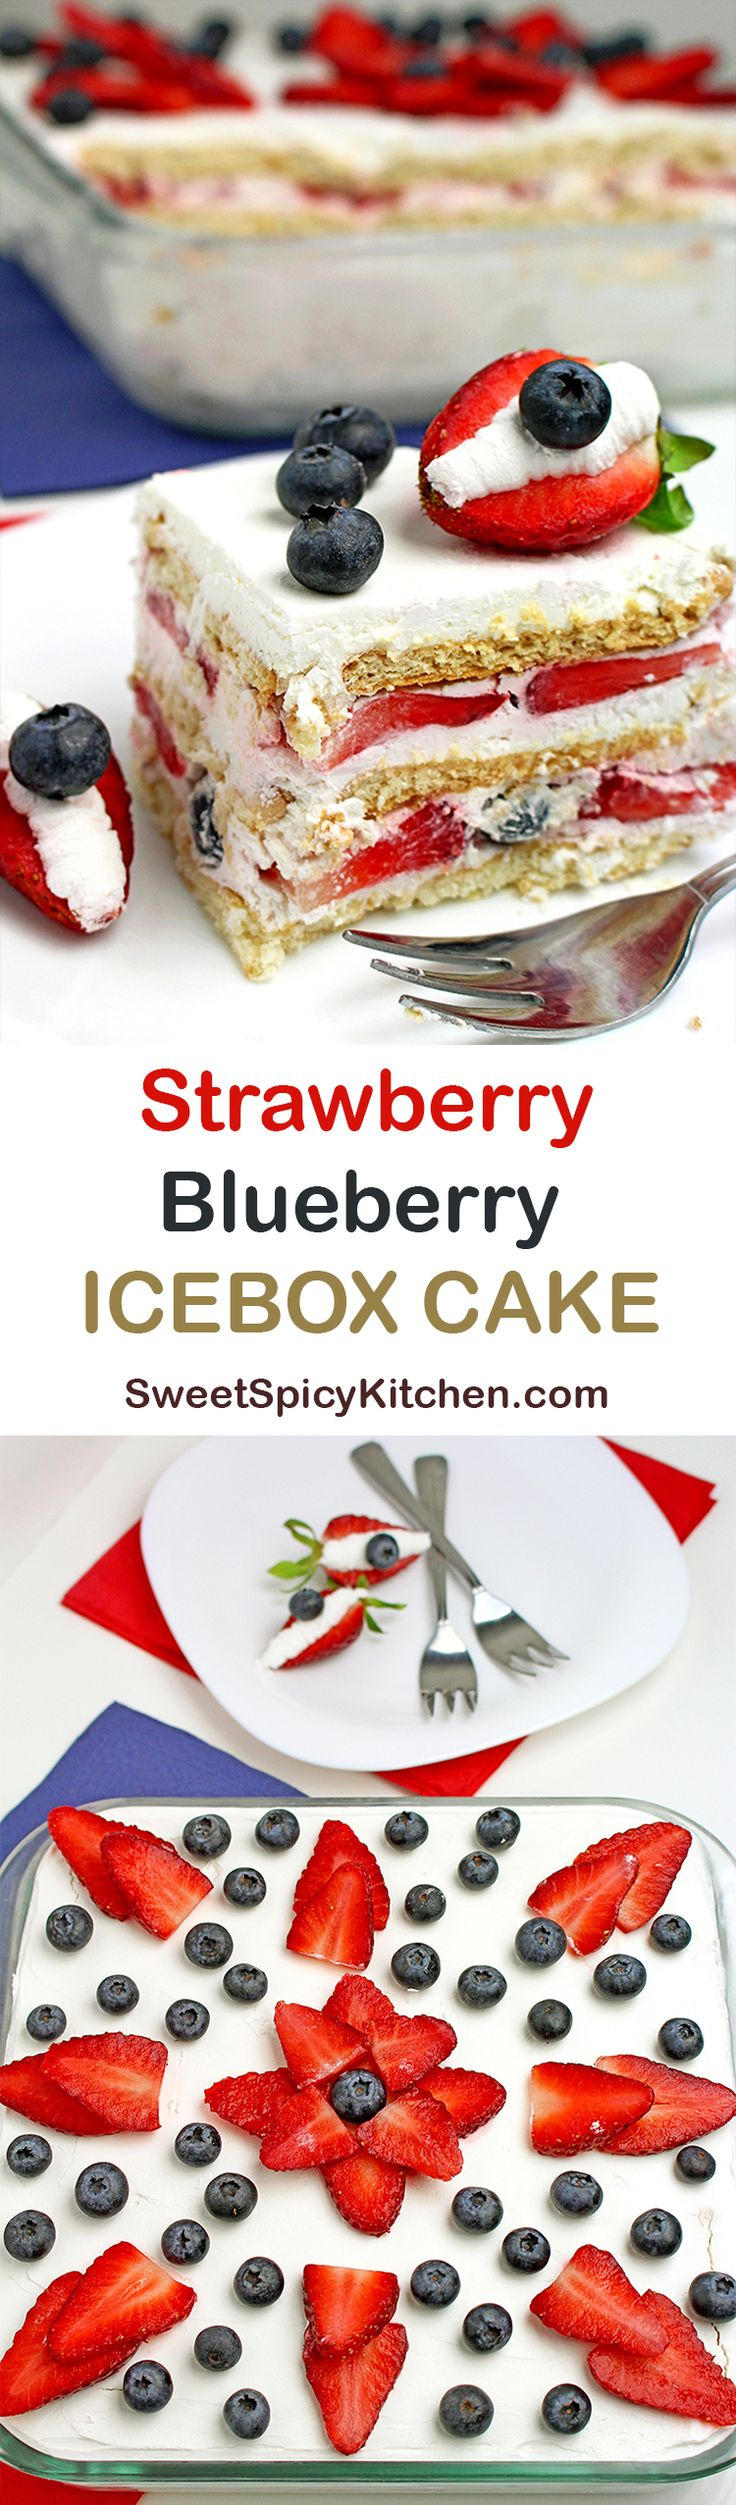 Easy No Bake Strawberry Blueberry Icebox Cake.. old fashioned dessert recipe perfect for Memorial Day & 4th of July or any other holiday & special occasion!